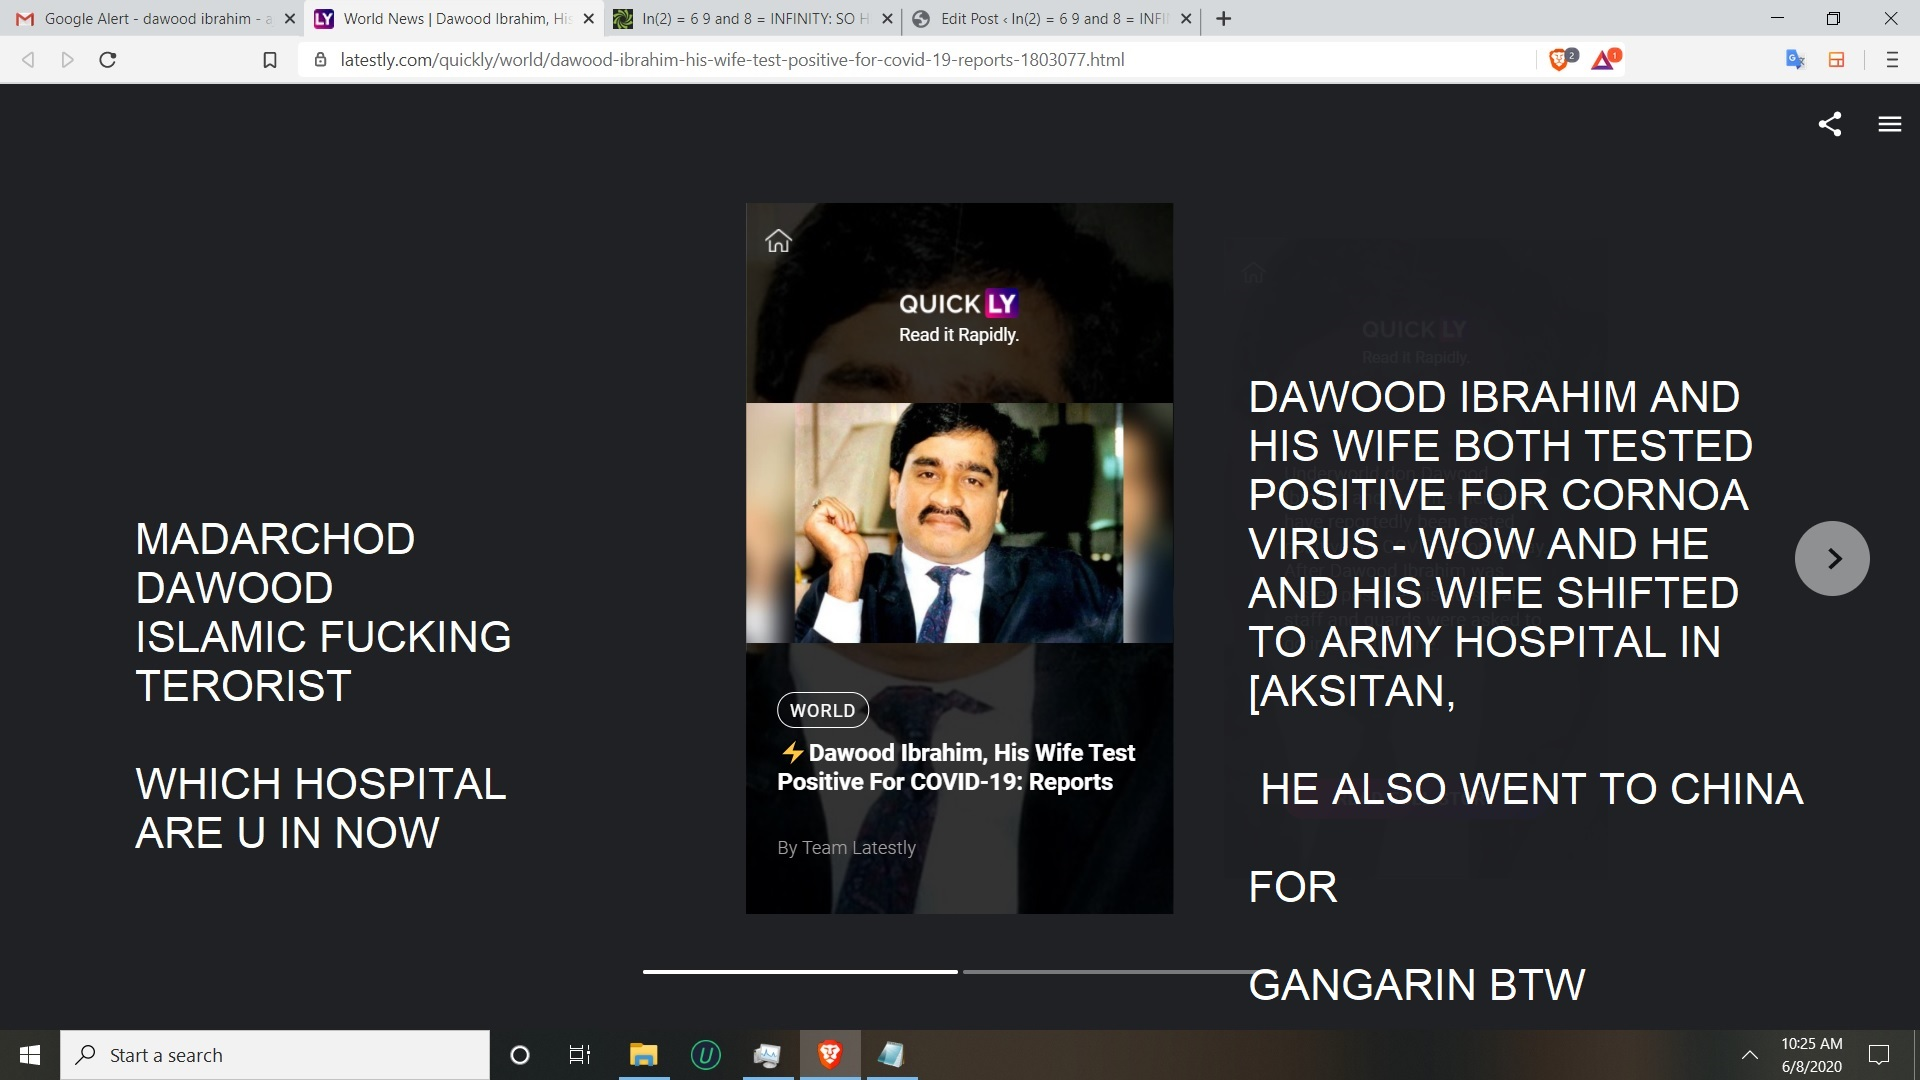 DAWOOD IBRAHIM AND HIS WIFE BOTH TESTED POSITIVE FOR CORNOA VIRUS - WOW AND HE AND HIS WIFE SHIFTED TO ARMY HOSPITAL IN [AKSITAN, HE ALSO WENT TO CHINA FORGANGARUN BTW